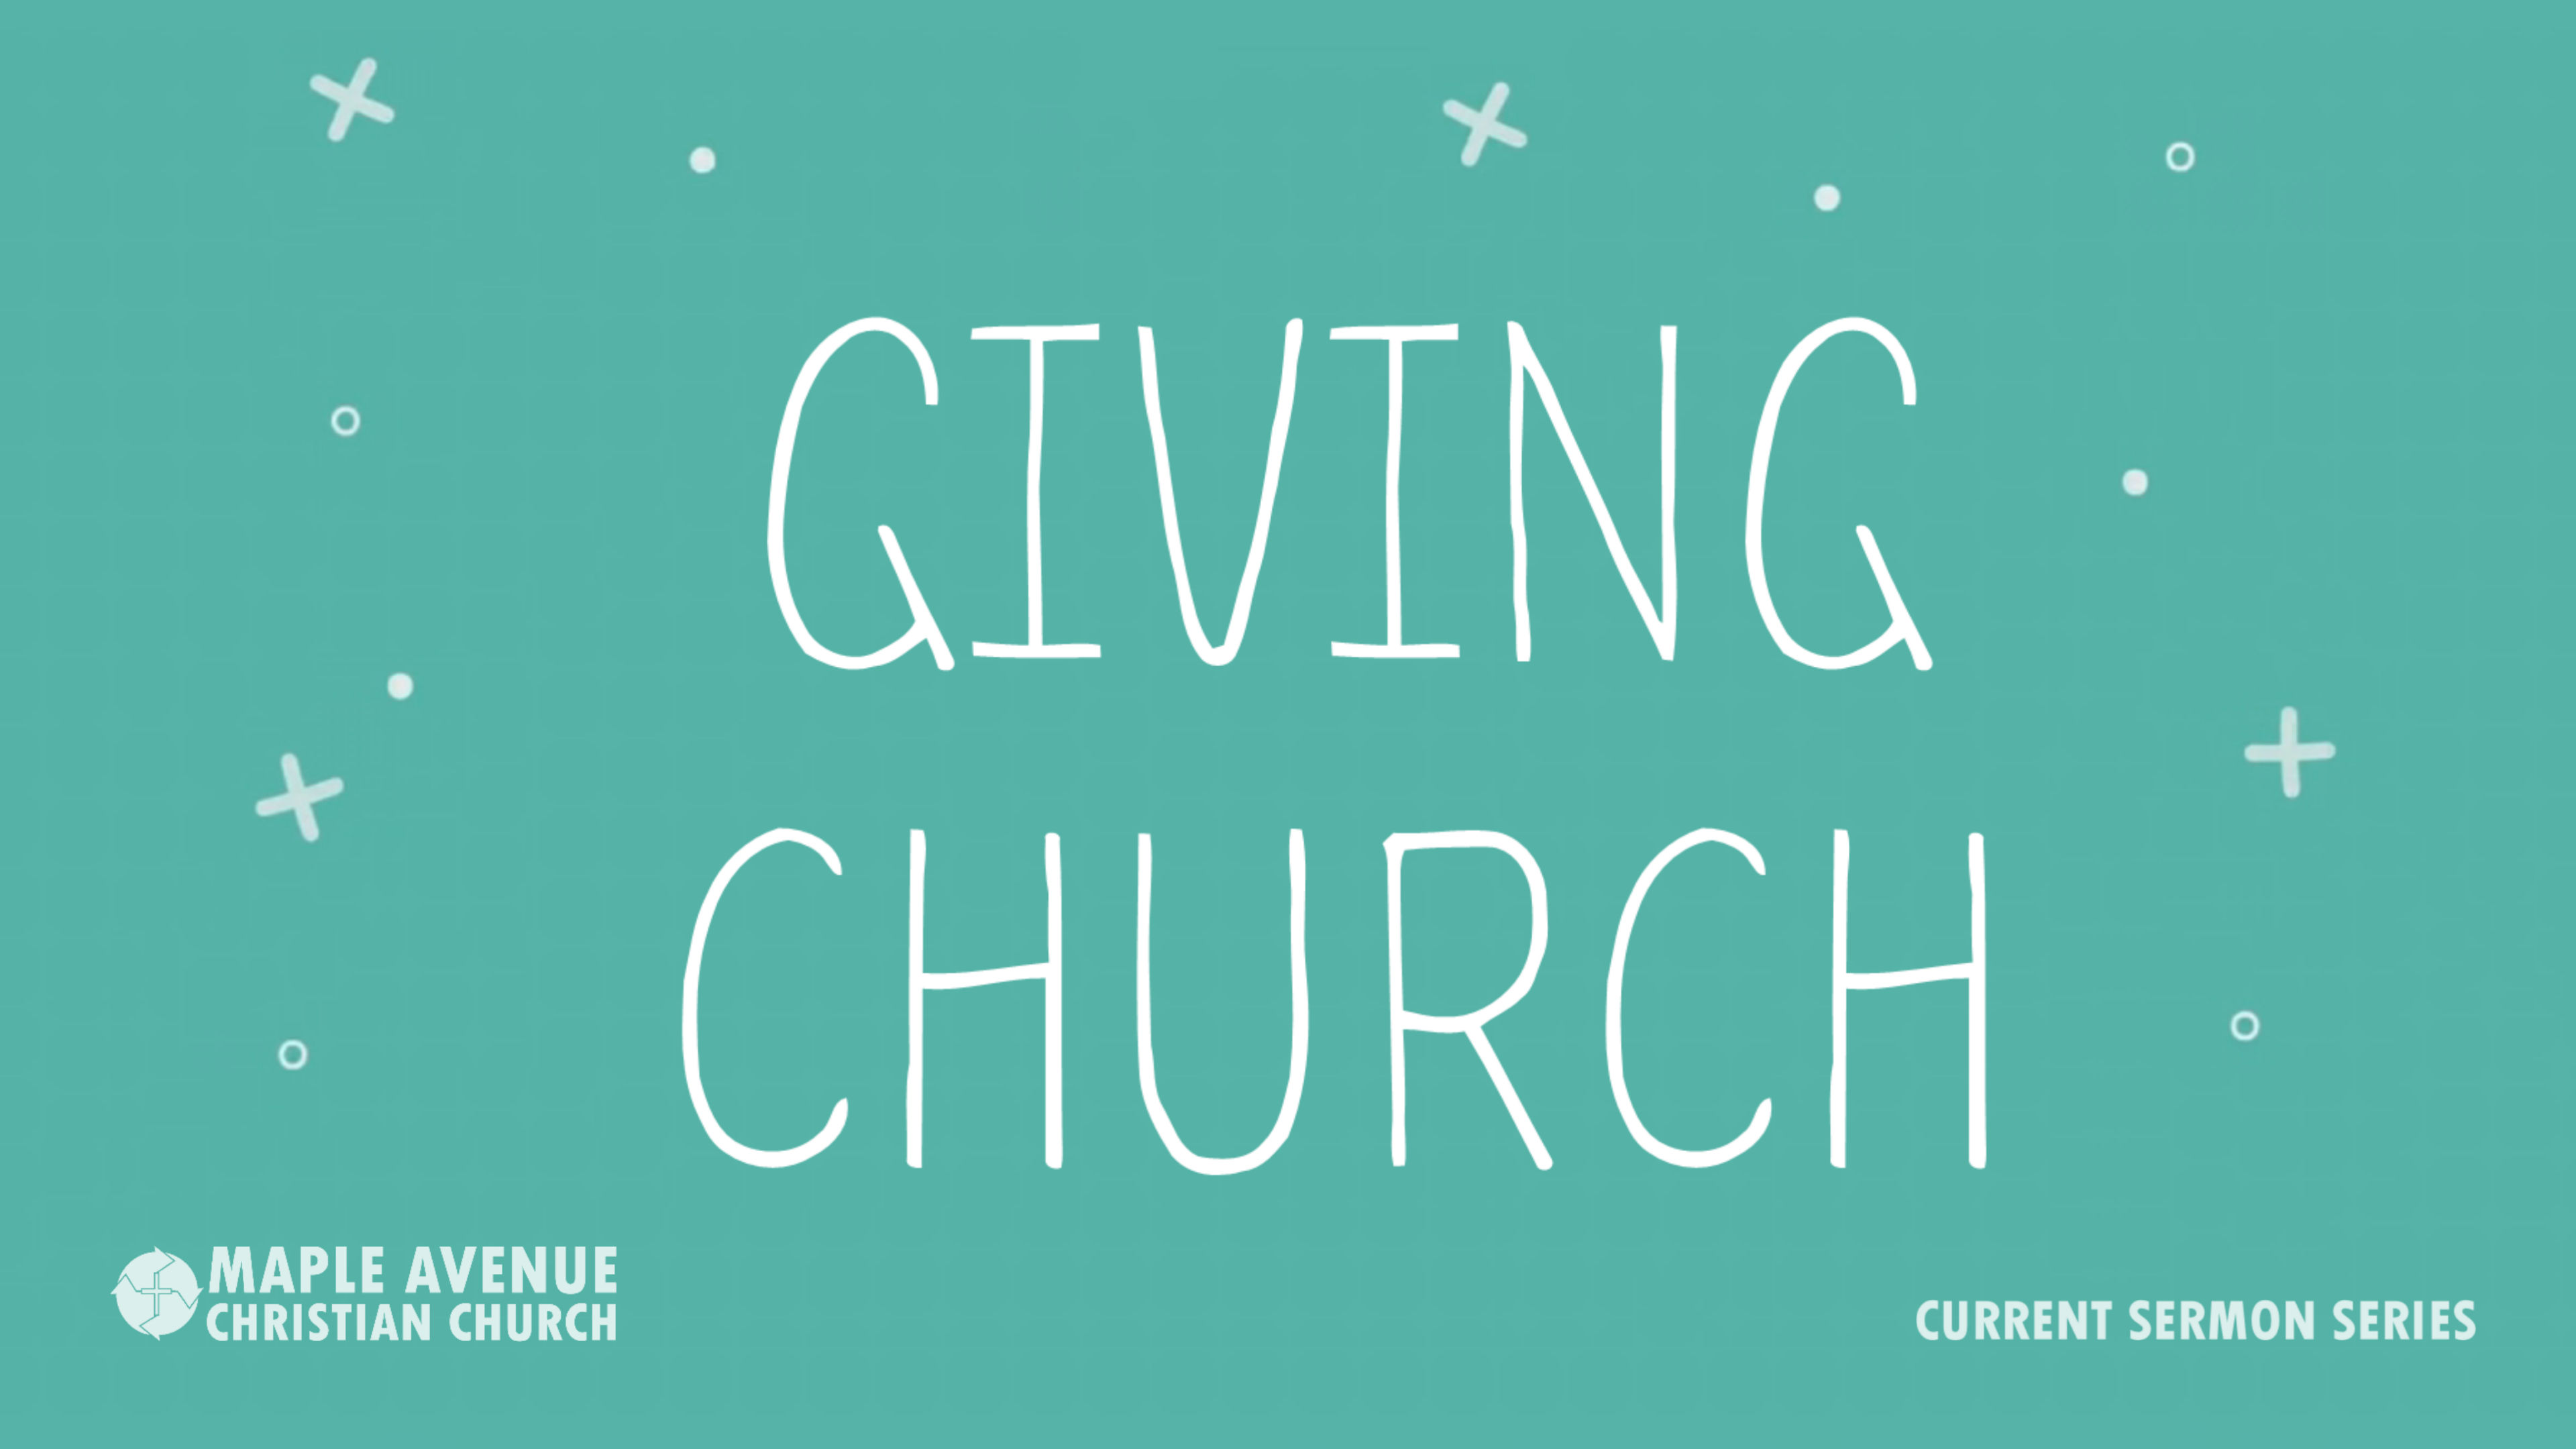 GIVING CHURCH: Hospitality